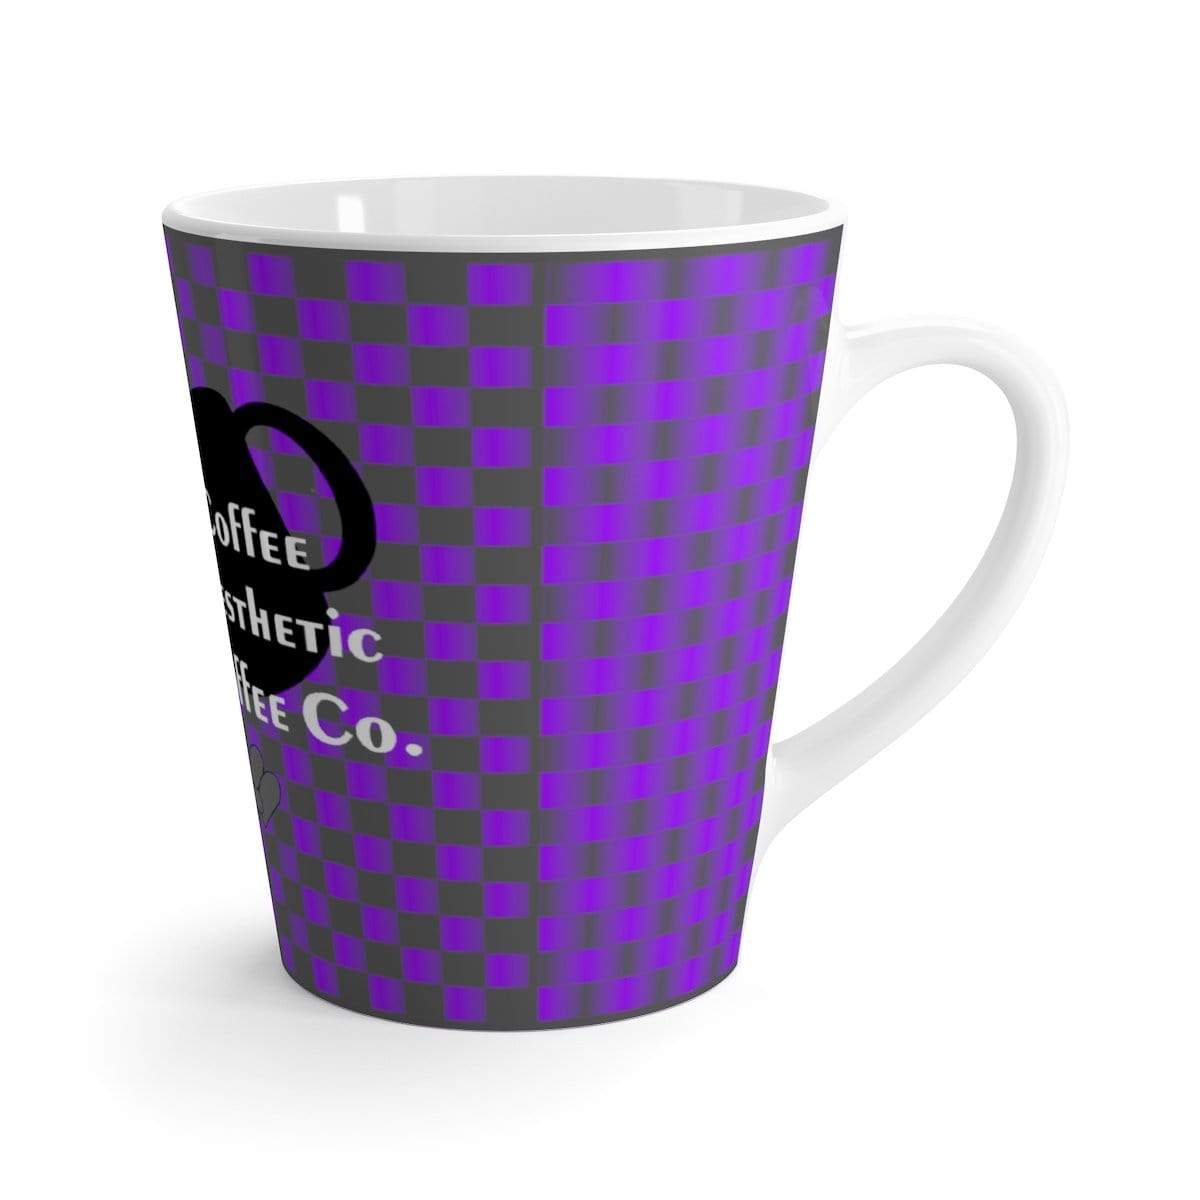 Coffee Aesthetic Coffee Co. Mug 12oz Coffee-Aesthetic.com - Big UV Grey Grid Latte mug